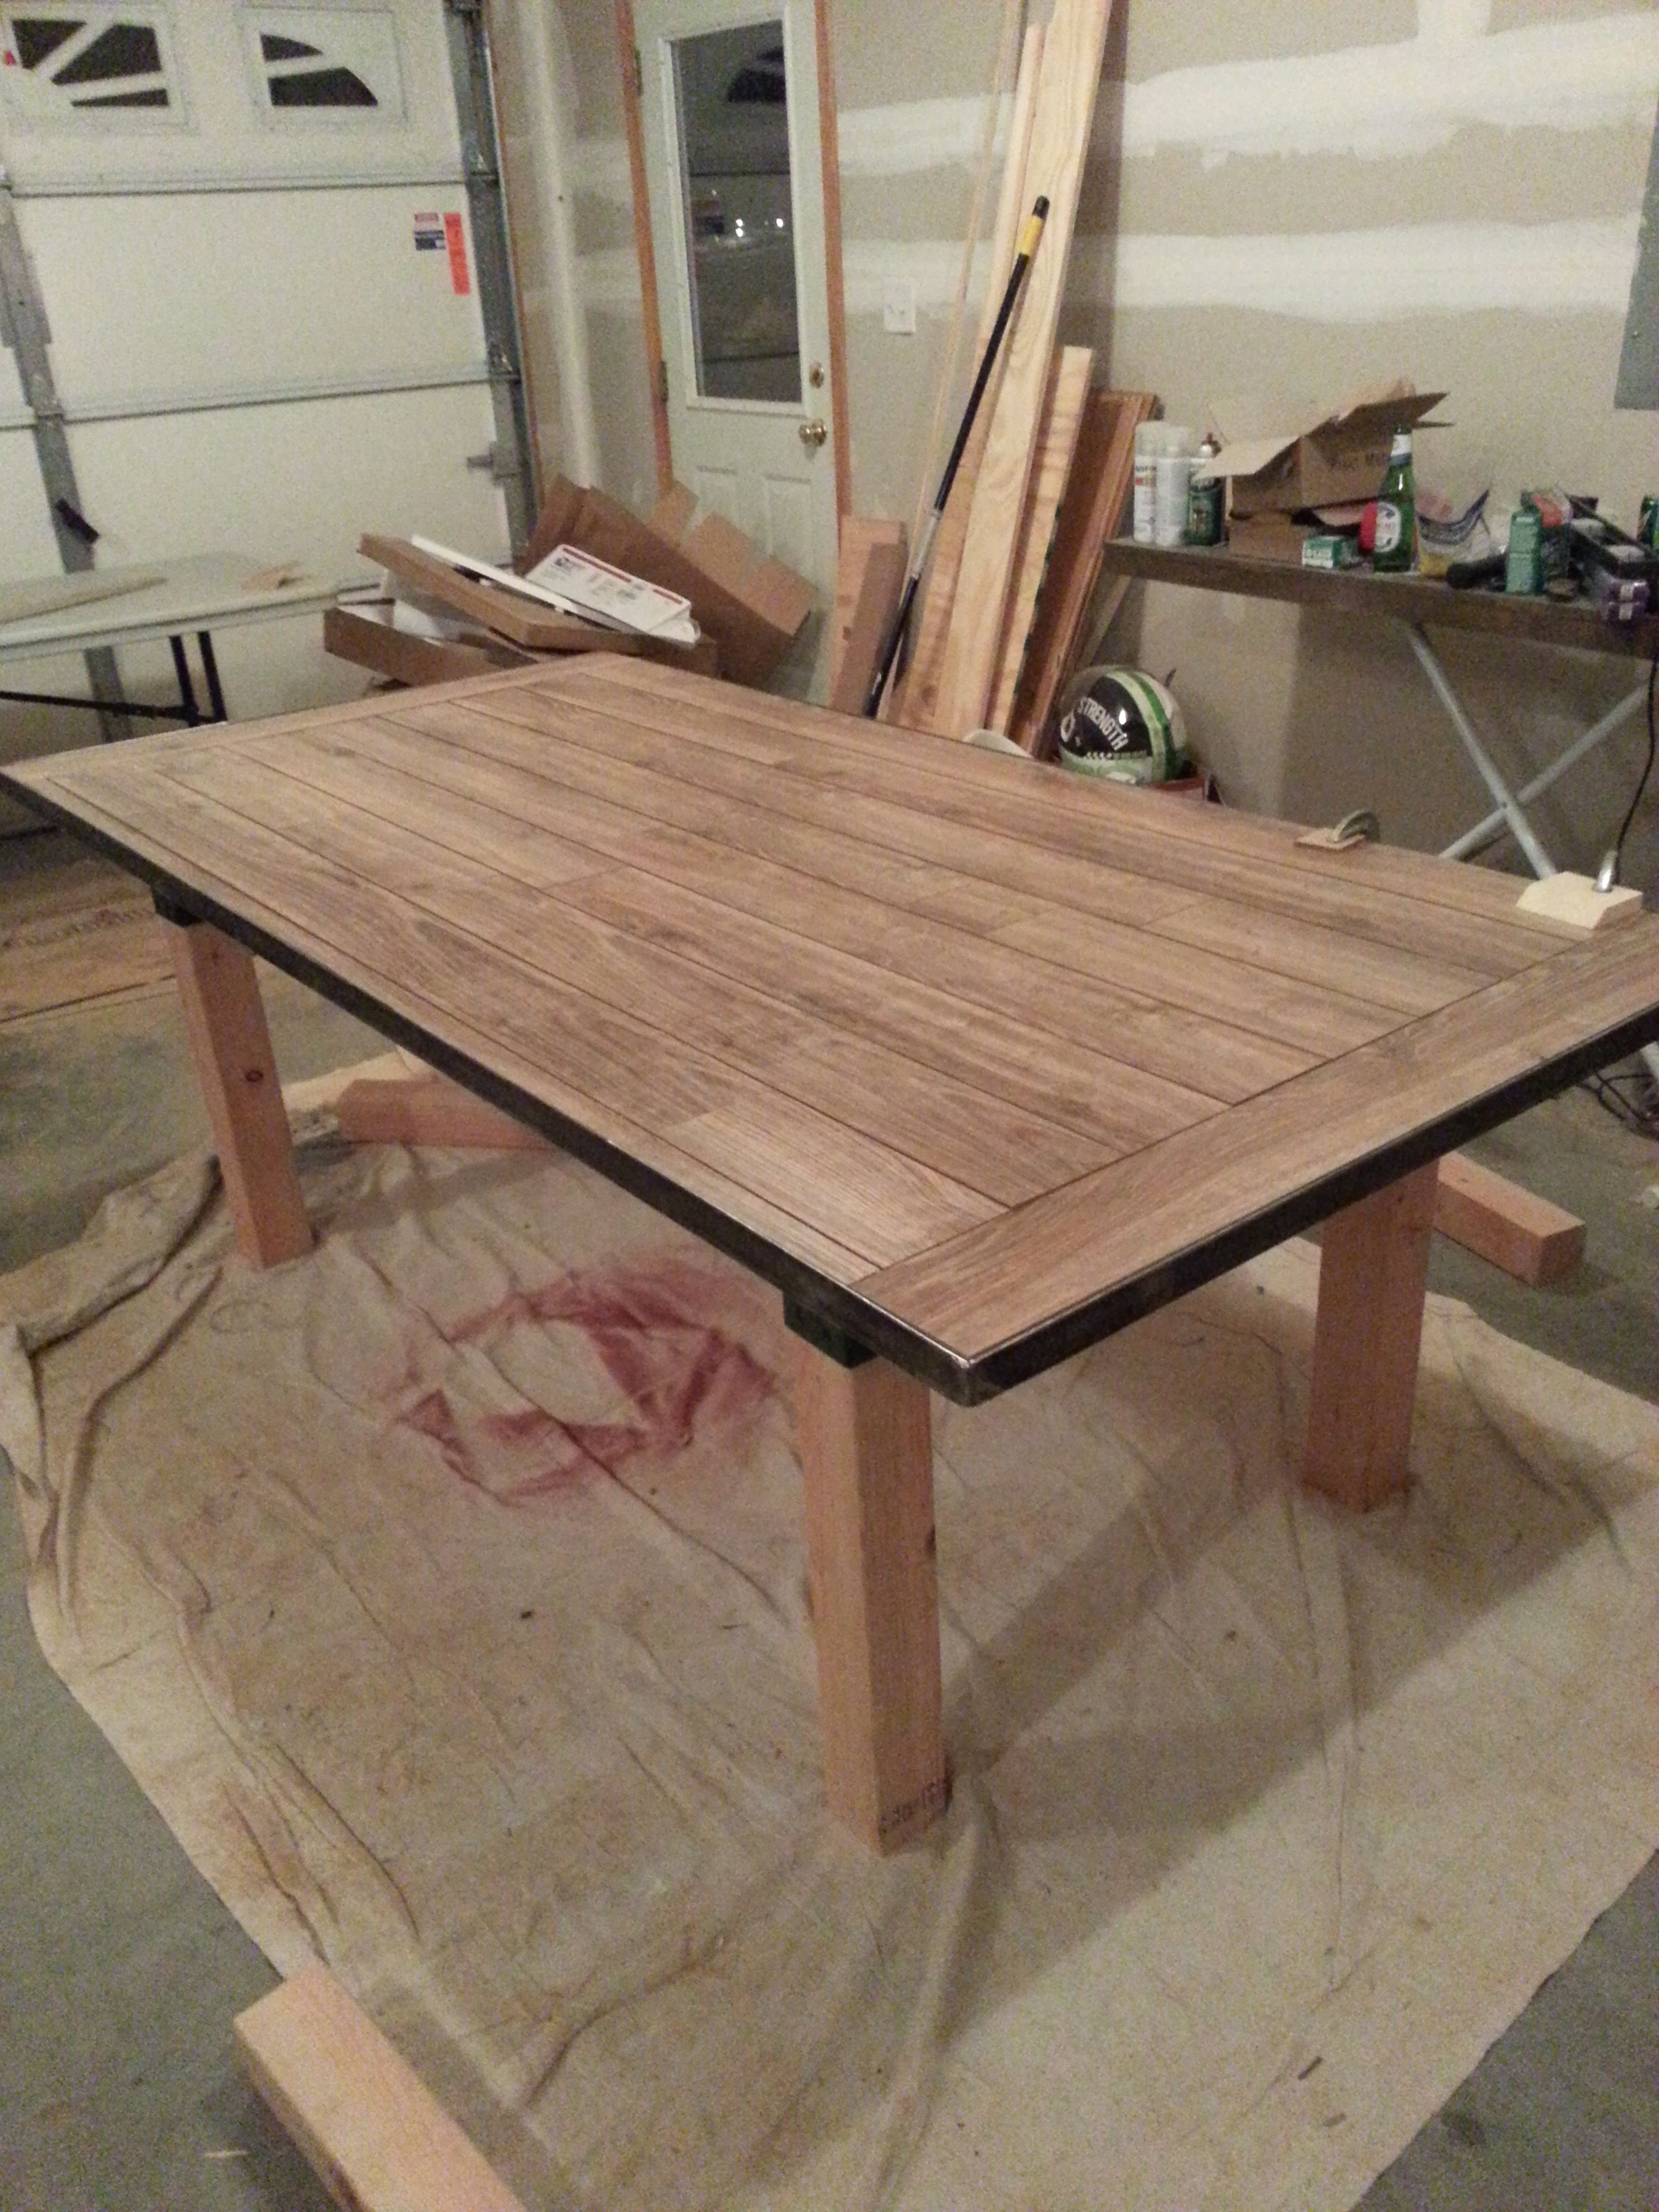 Diy dining table laminate flooring as the table top